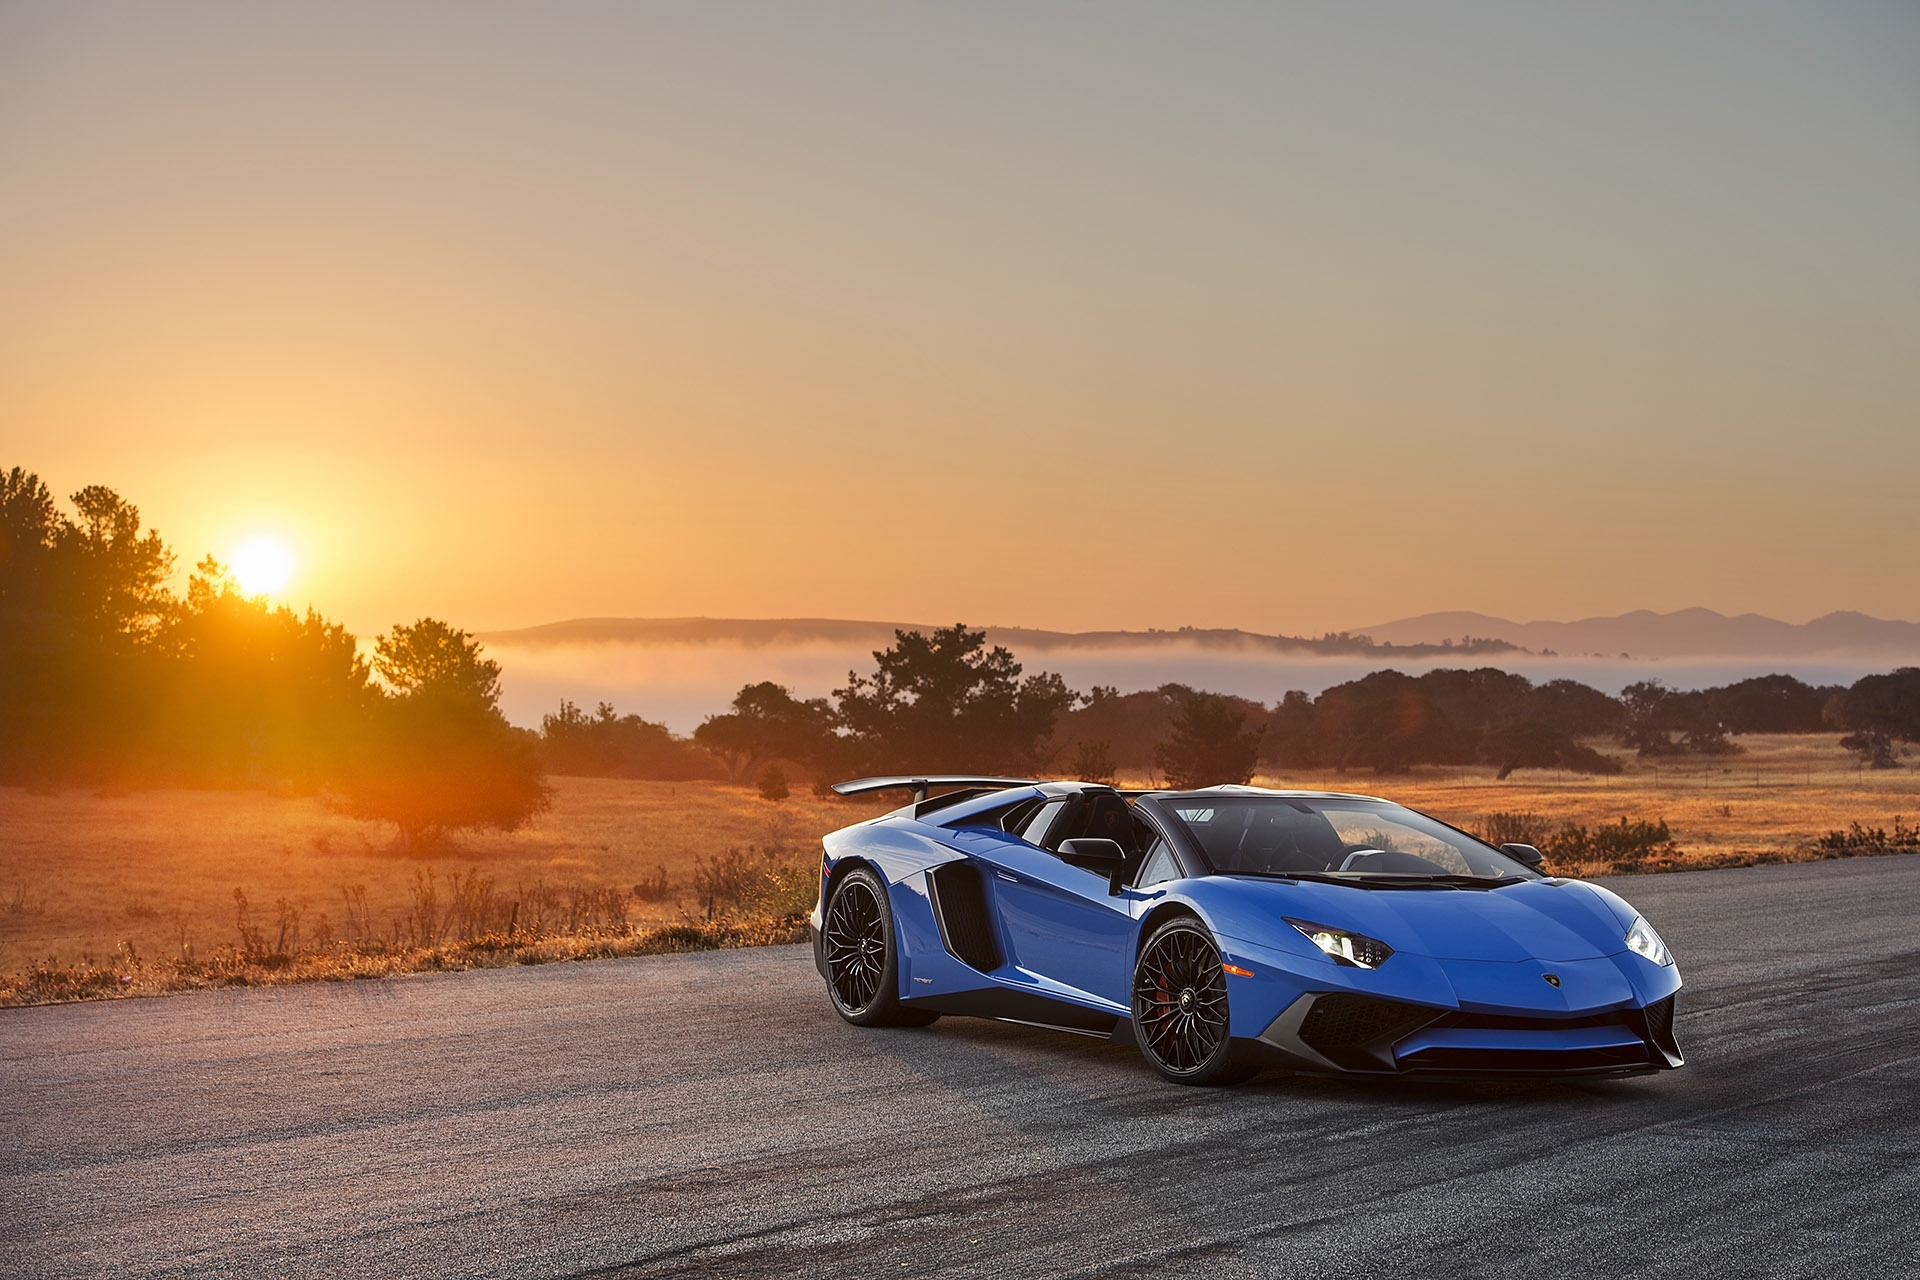 lamborghini aventador blue wallpaper hd 1920x1080 with Lamborghini Aventador 3 Wallpaper on Lamborghini Huracan Blue 2 further 137 Lamborghini Aventador J Wallpaper 5 as well Lamborghini Aventador 3 Wallpaper further Lykan Hypersport Vehicle Car Blue Cars 240991 together with Chameleon Green Hd 4100.